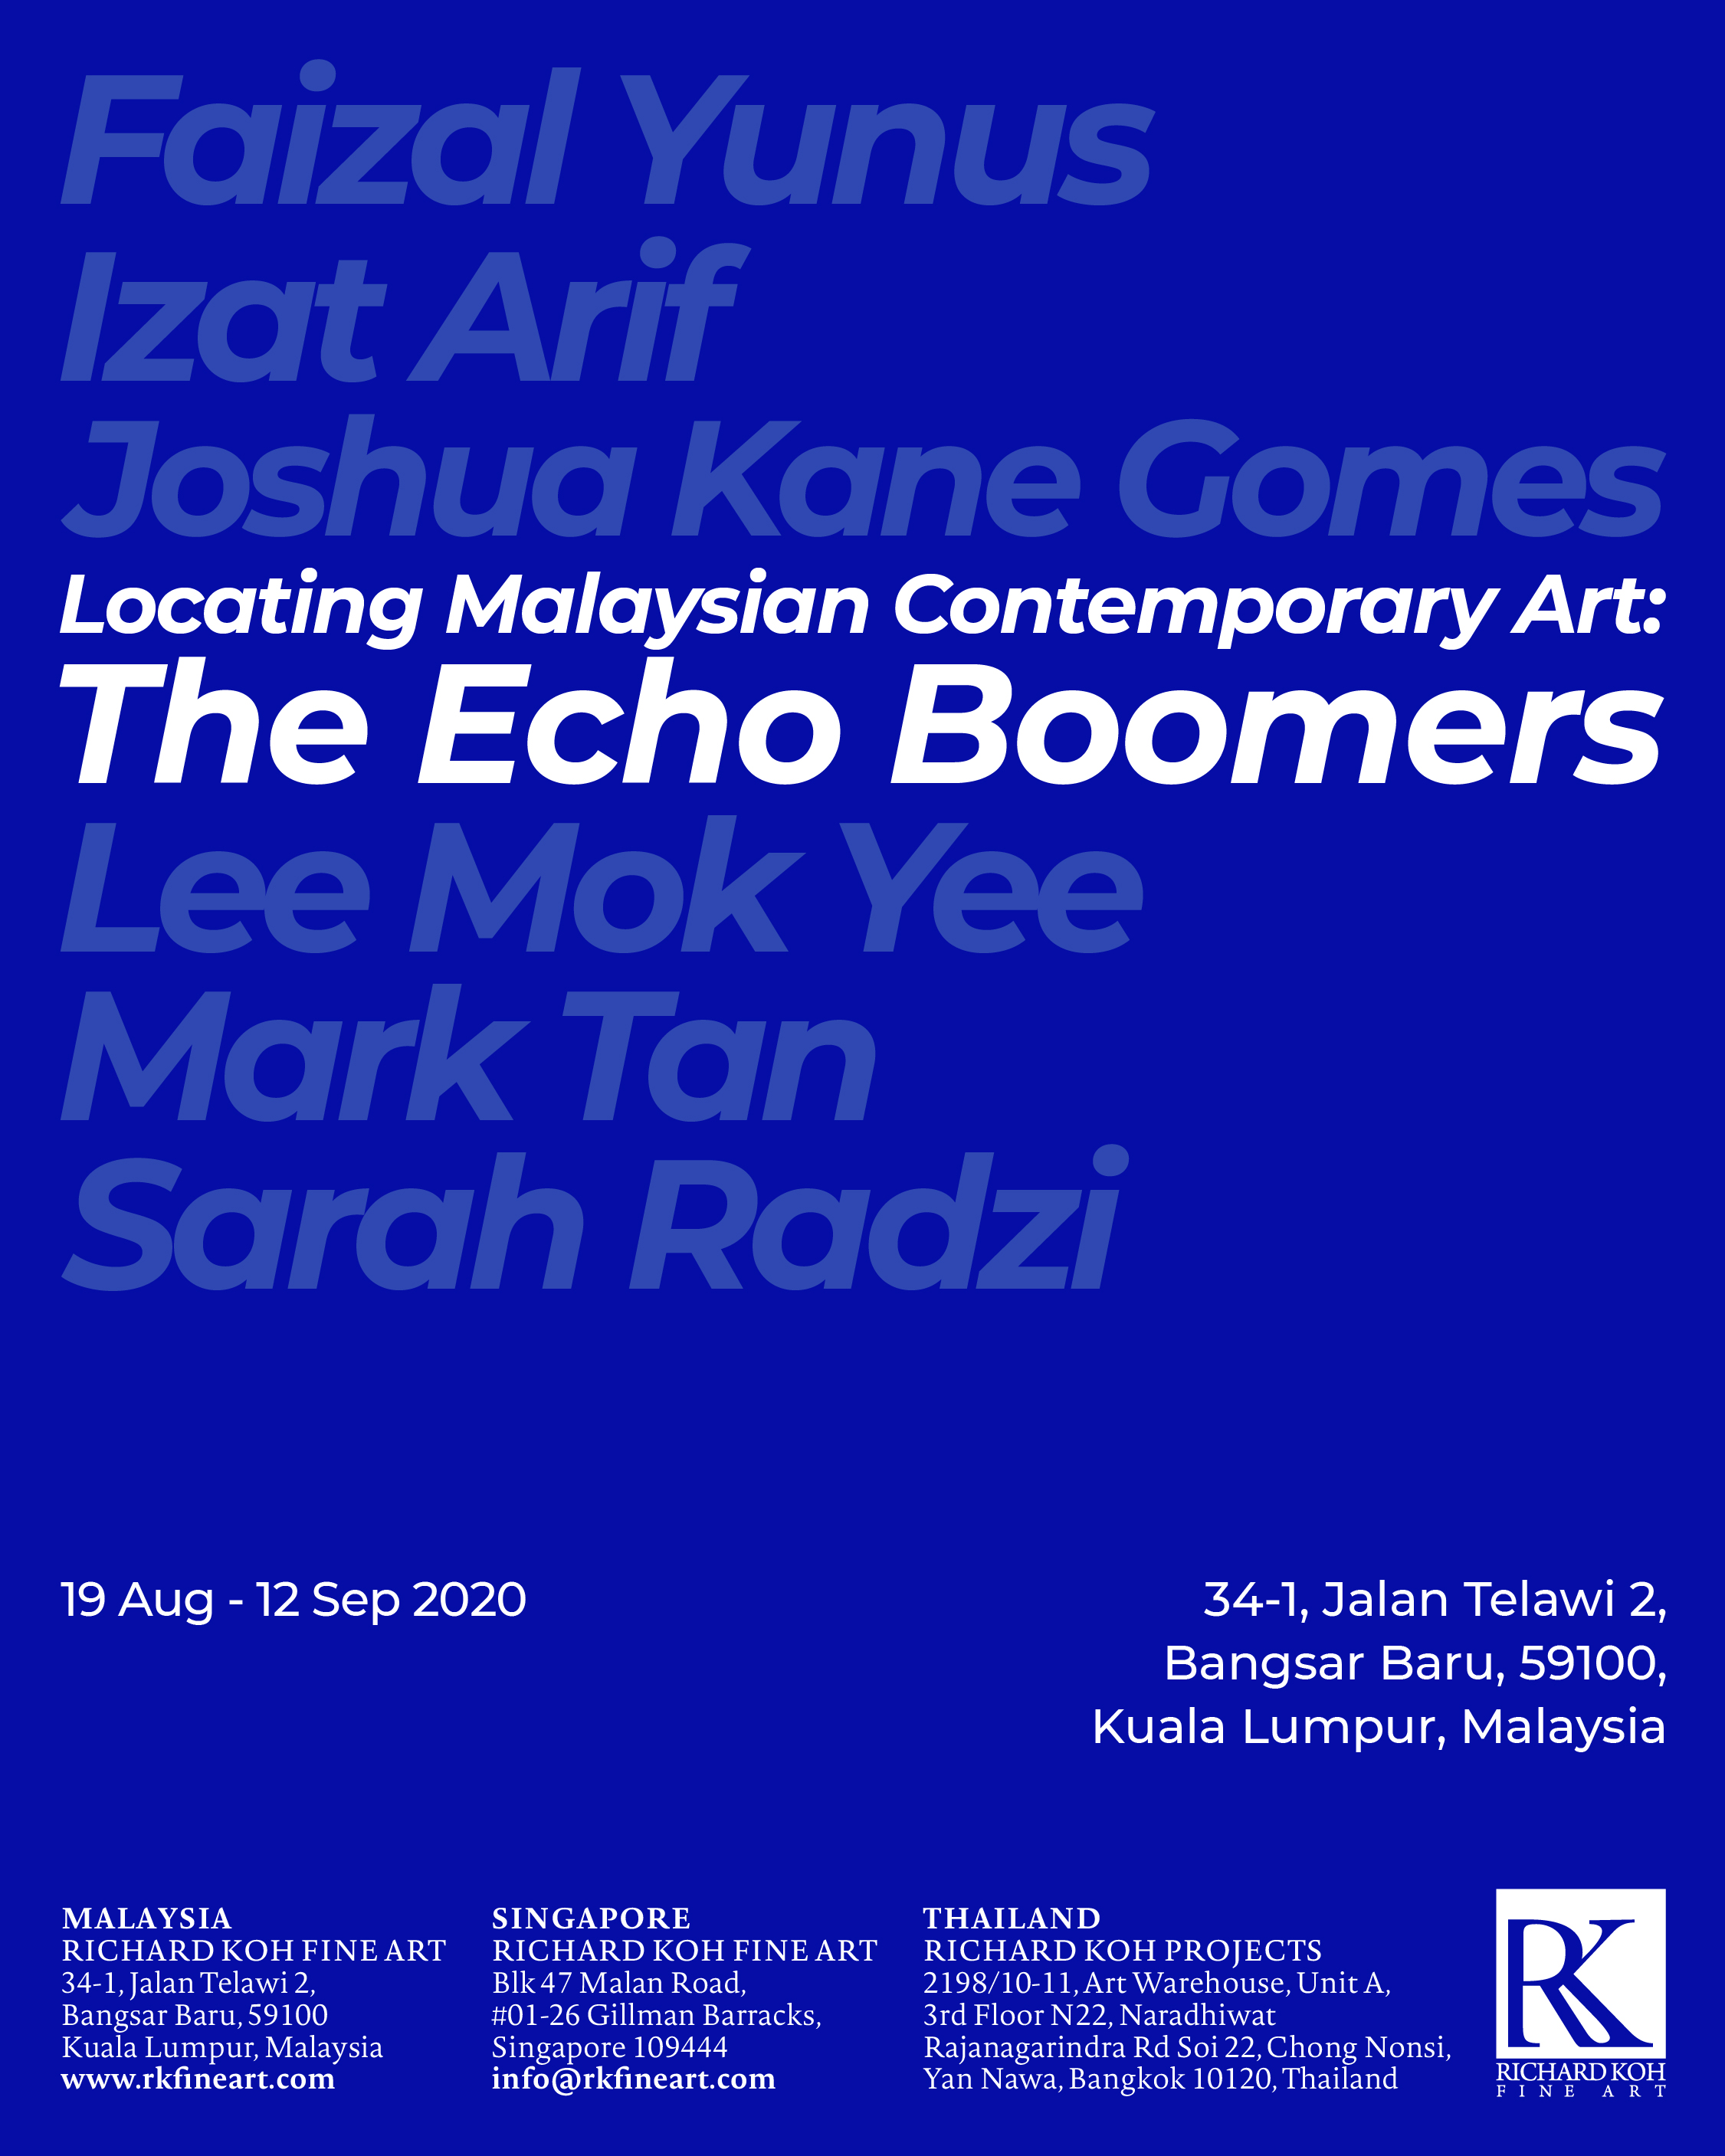 Faizal Yunus, Izat Arif, Joshua Kane Gomes, Lee Mok Yee, Mark Tan & Sarah Radzi – Locating Malaysian Contemporary Art: The Echo Boomers